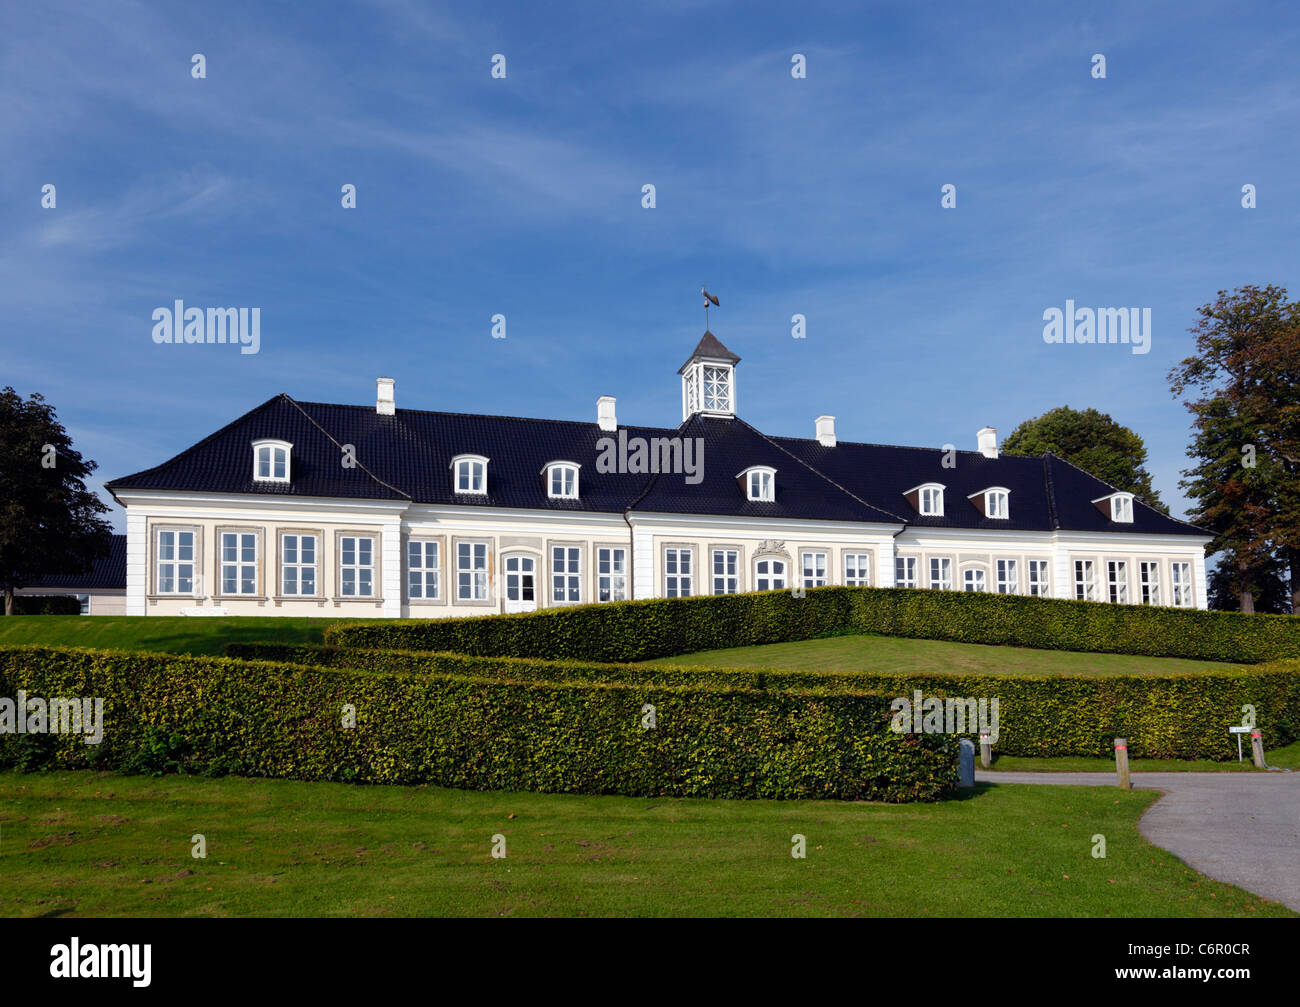 The Sophienberg Palace in Rungsted Kyst - the most beautiful conference center in North Zealand, Denmark. - Stock Image